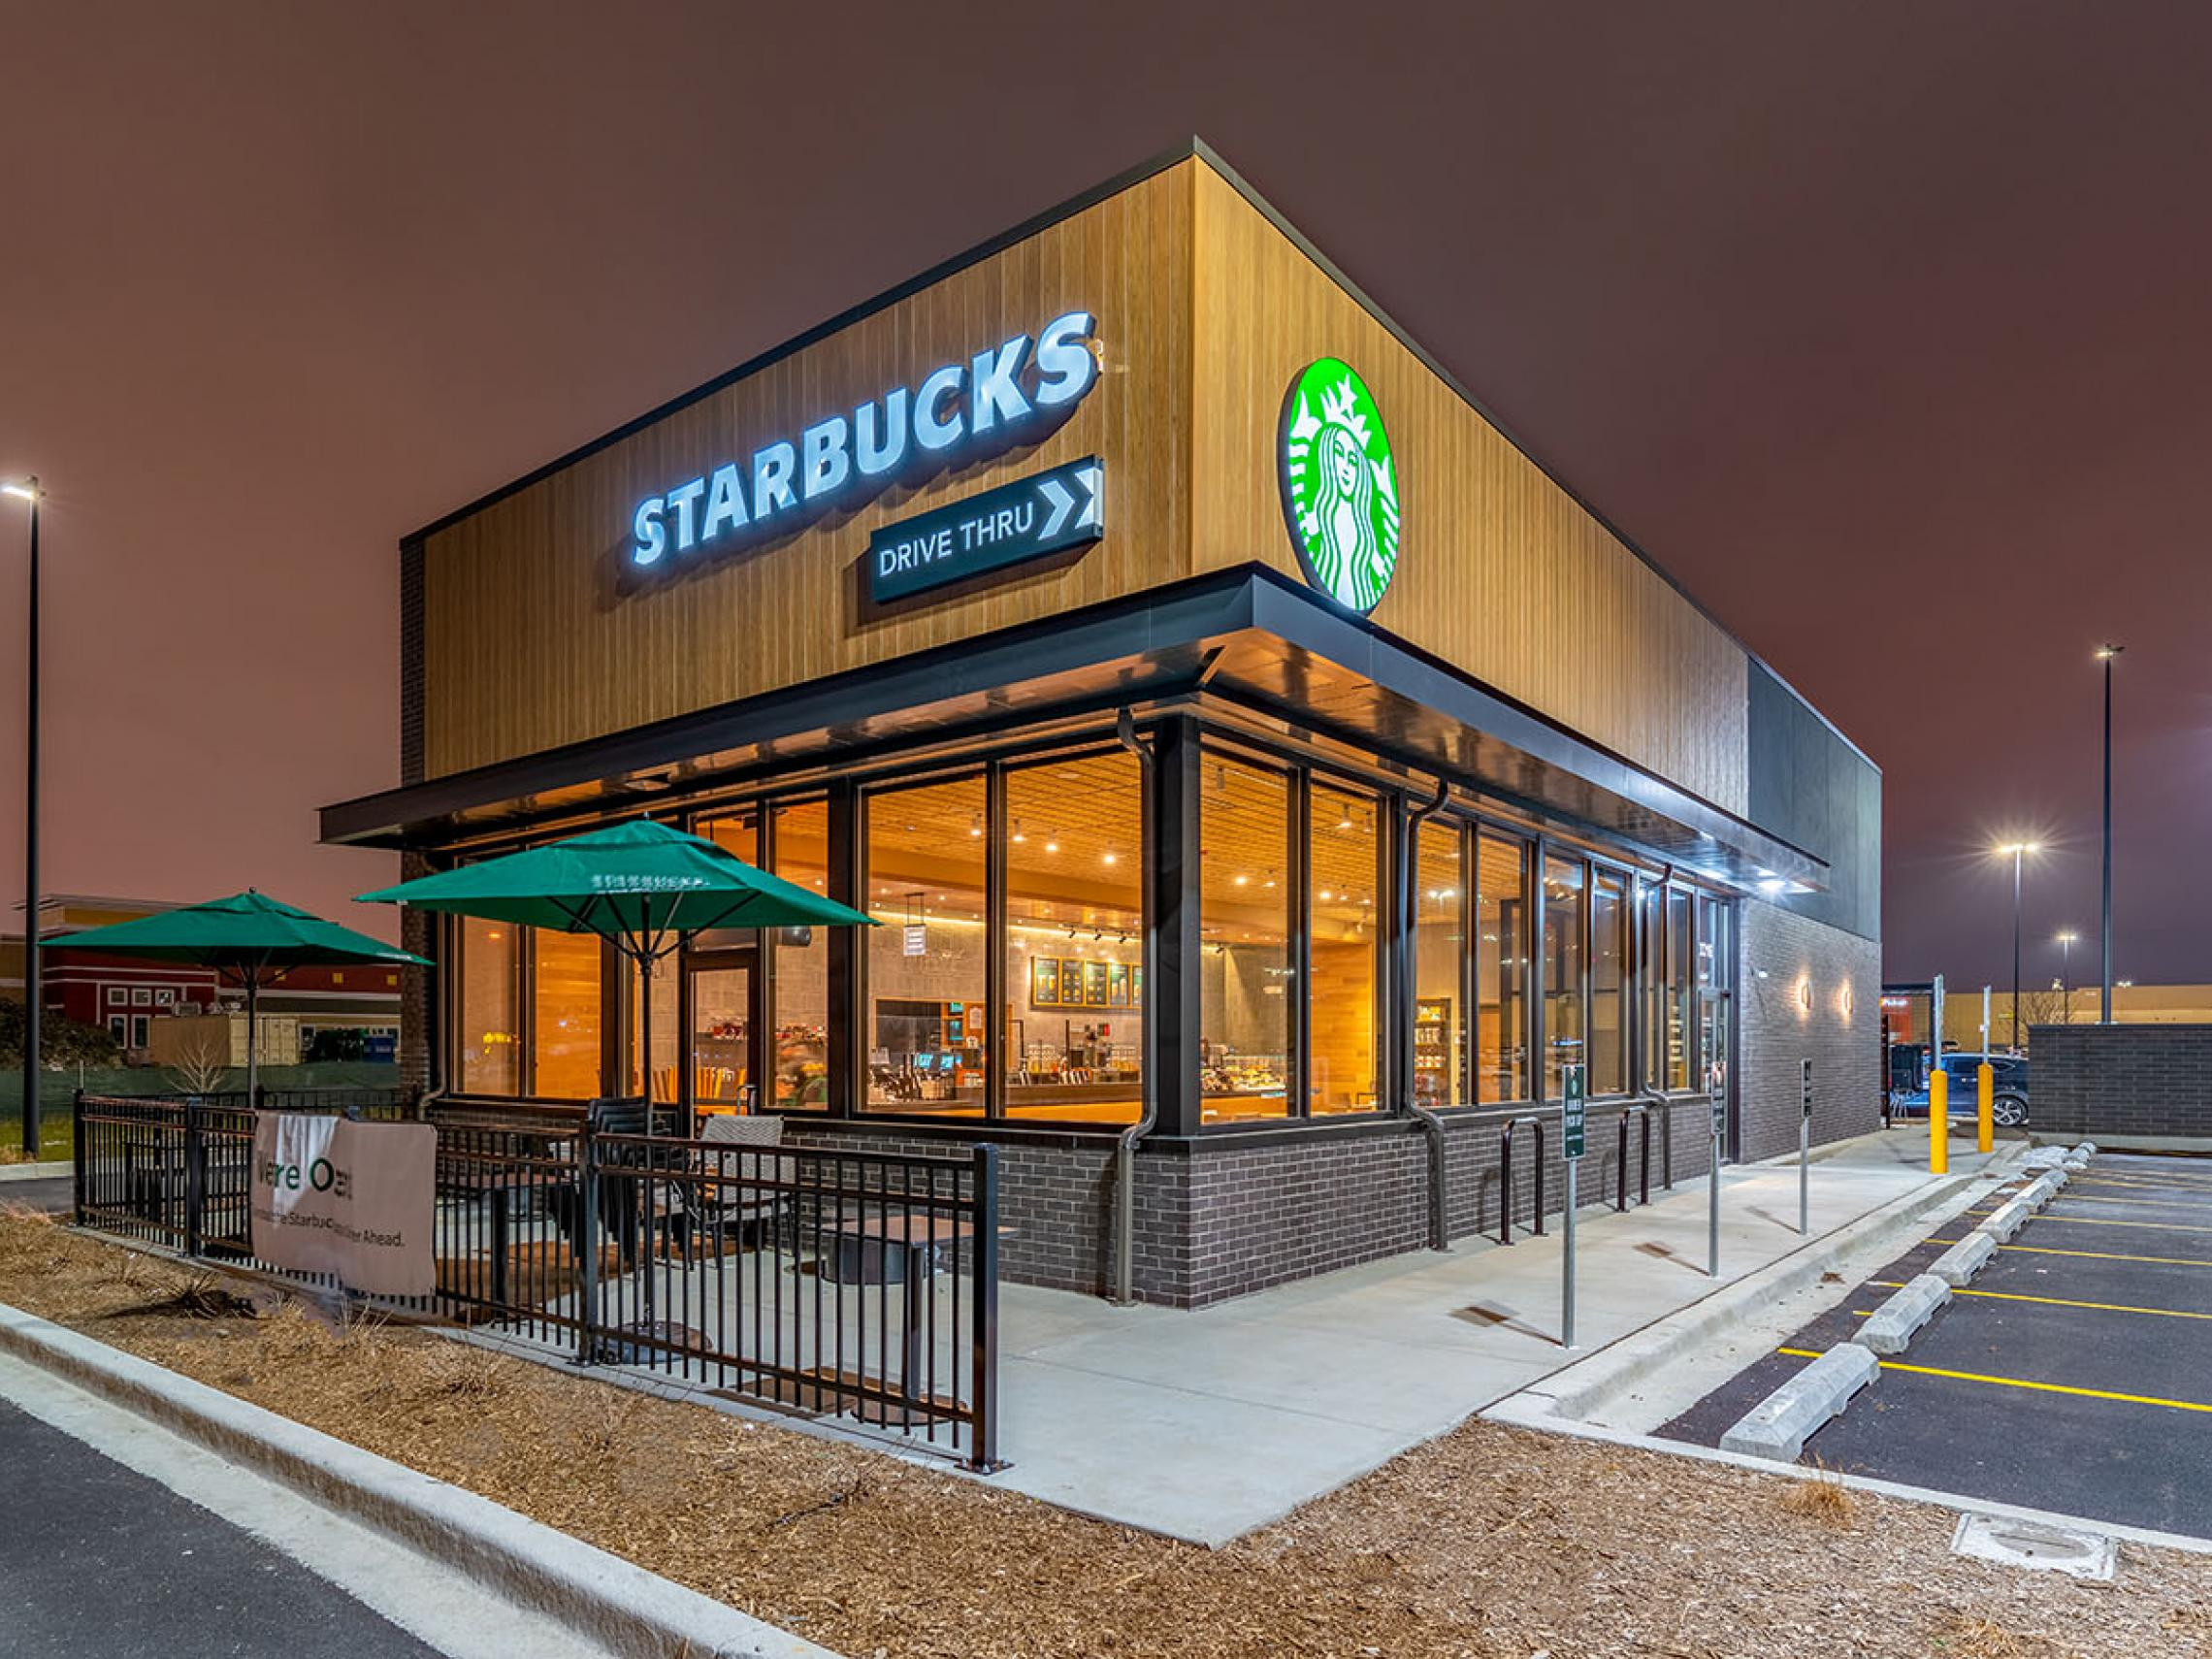 Freestanding Starbucks with Drive-Thru, Cicero, IL